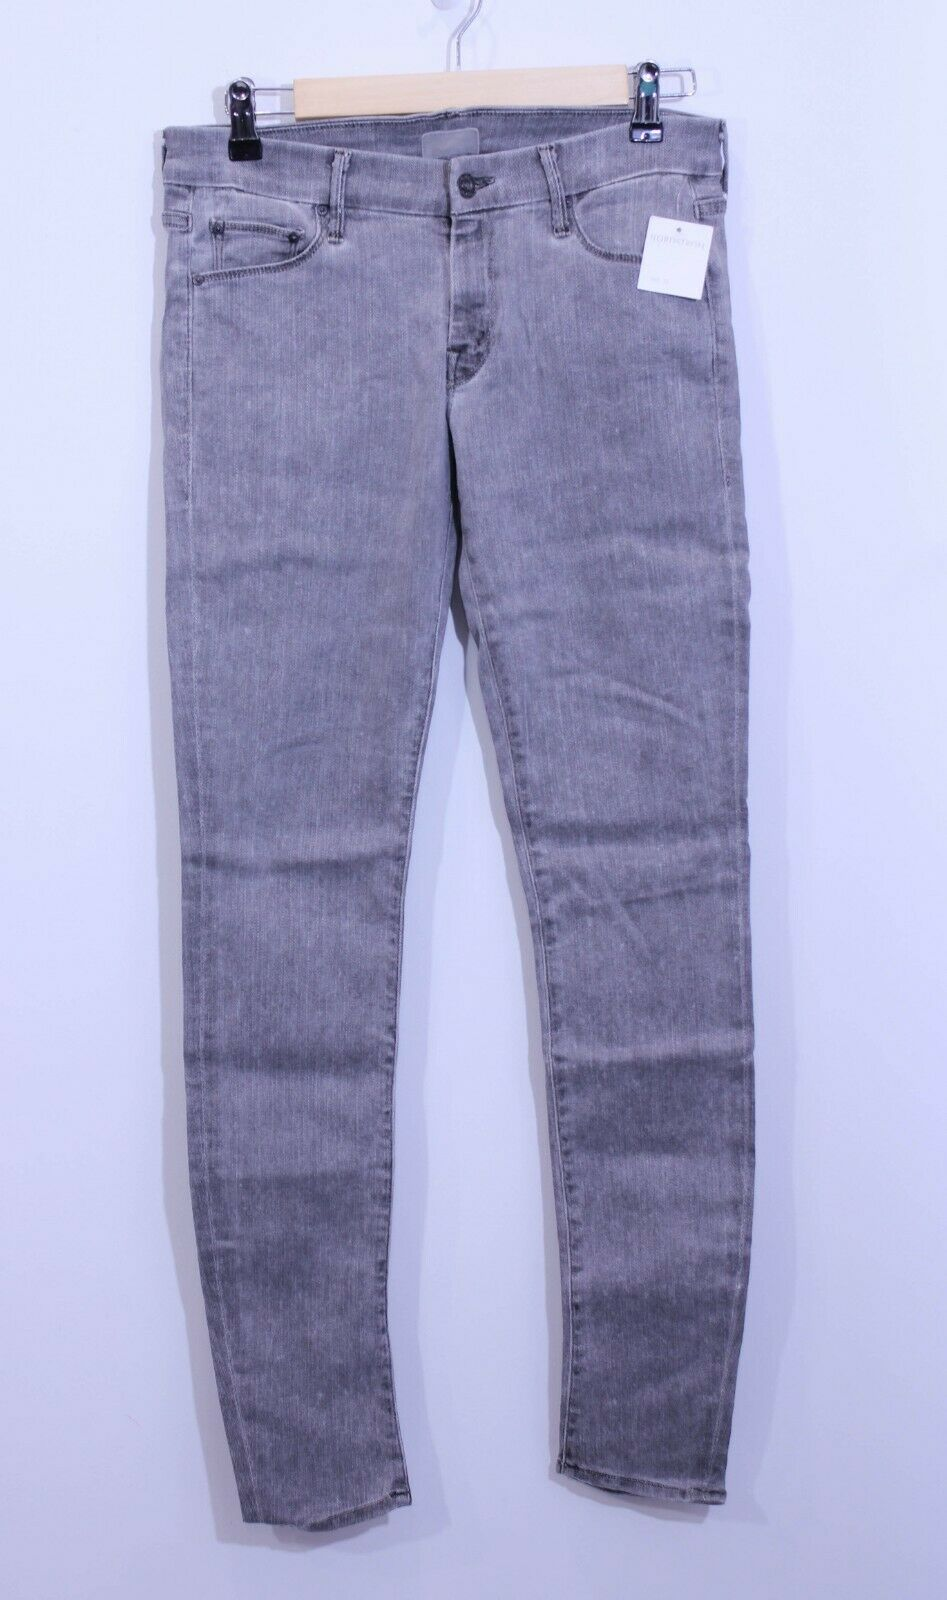 NWT MOTHER THE LOOKER BATTLEGROUND GREY LOW RISE SKINNY STRETCH JEANS SIZE 28